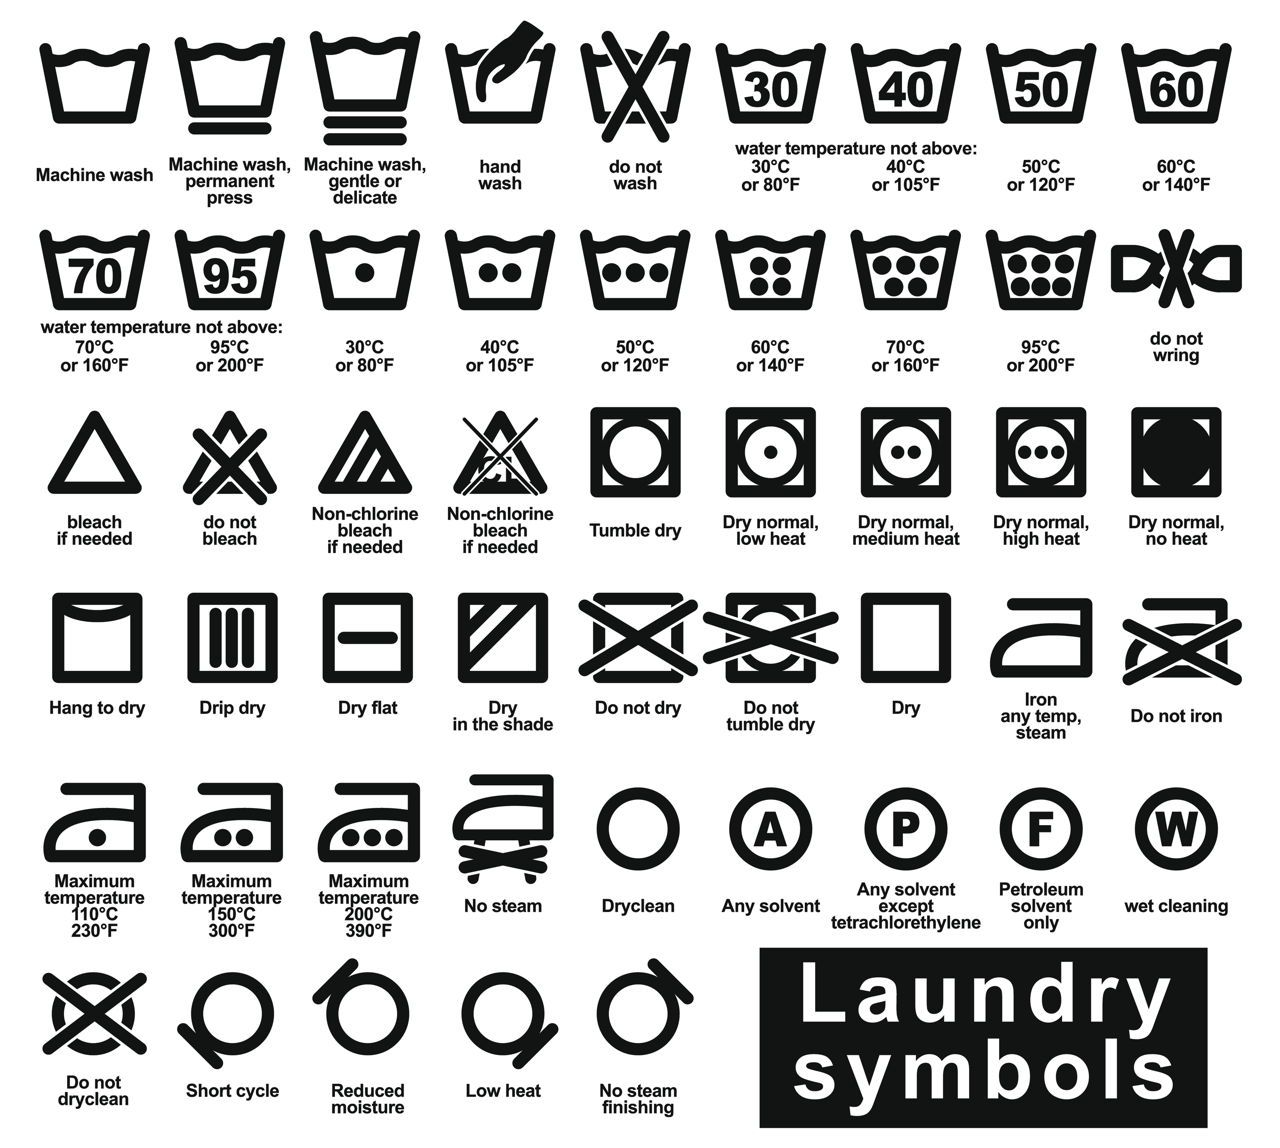 Laundry Symbols And What They Mean